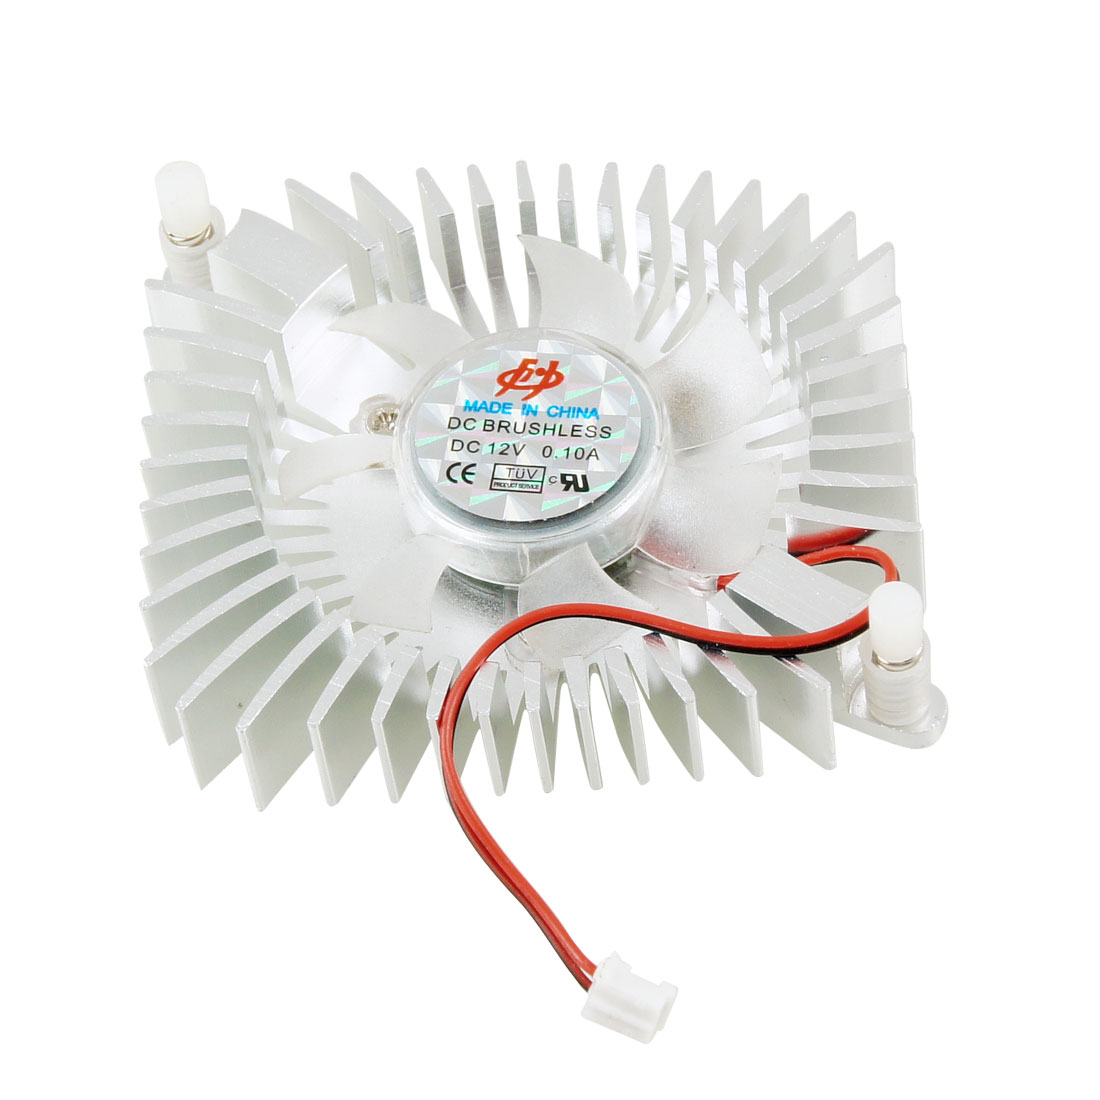 Silver Tone Clear 2-wire CPU Cooler Cooling Fan for Computer